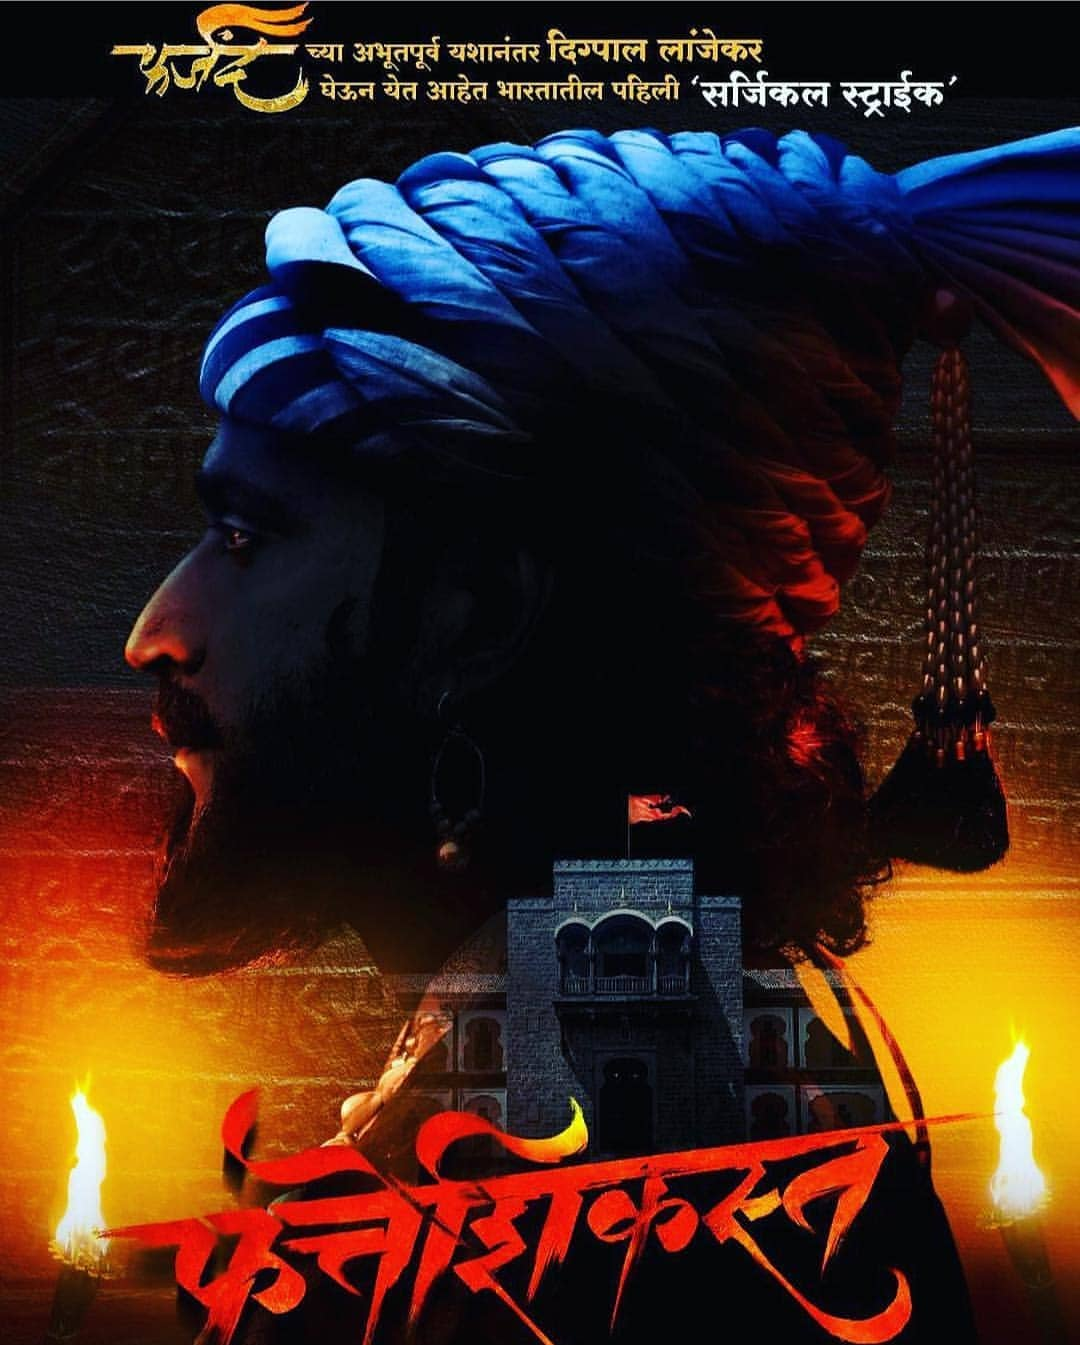 Fatteshikast Marathi Movie – Upcoming Marathi Movie